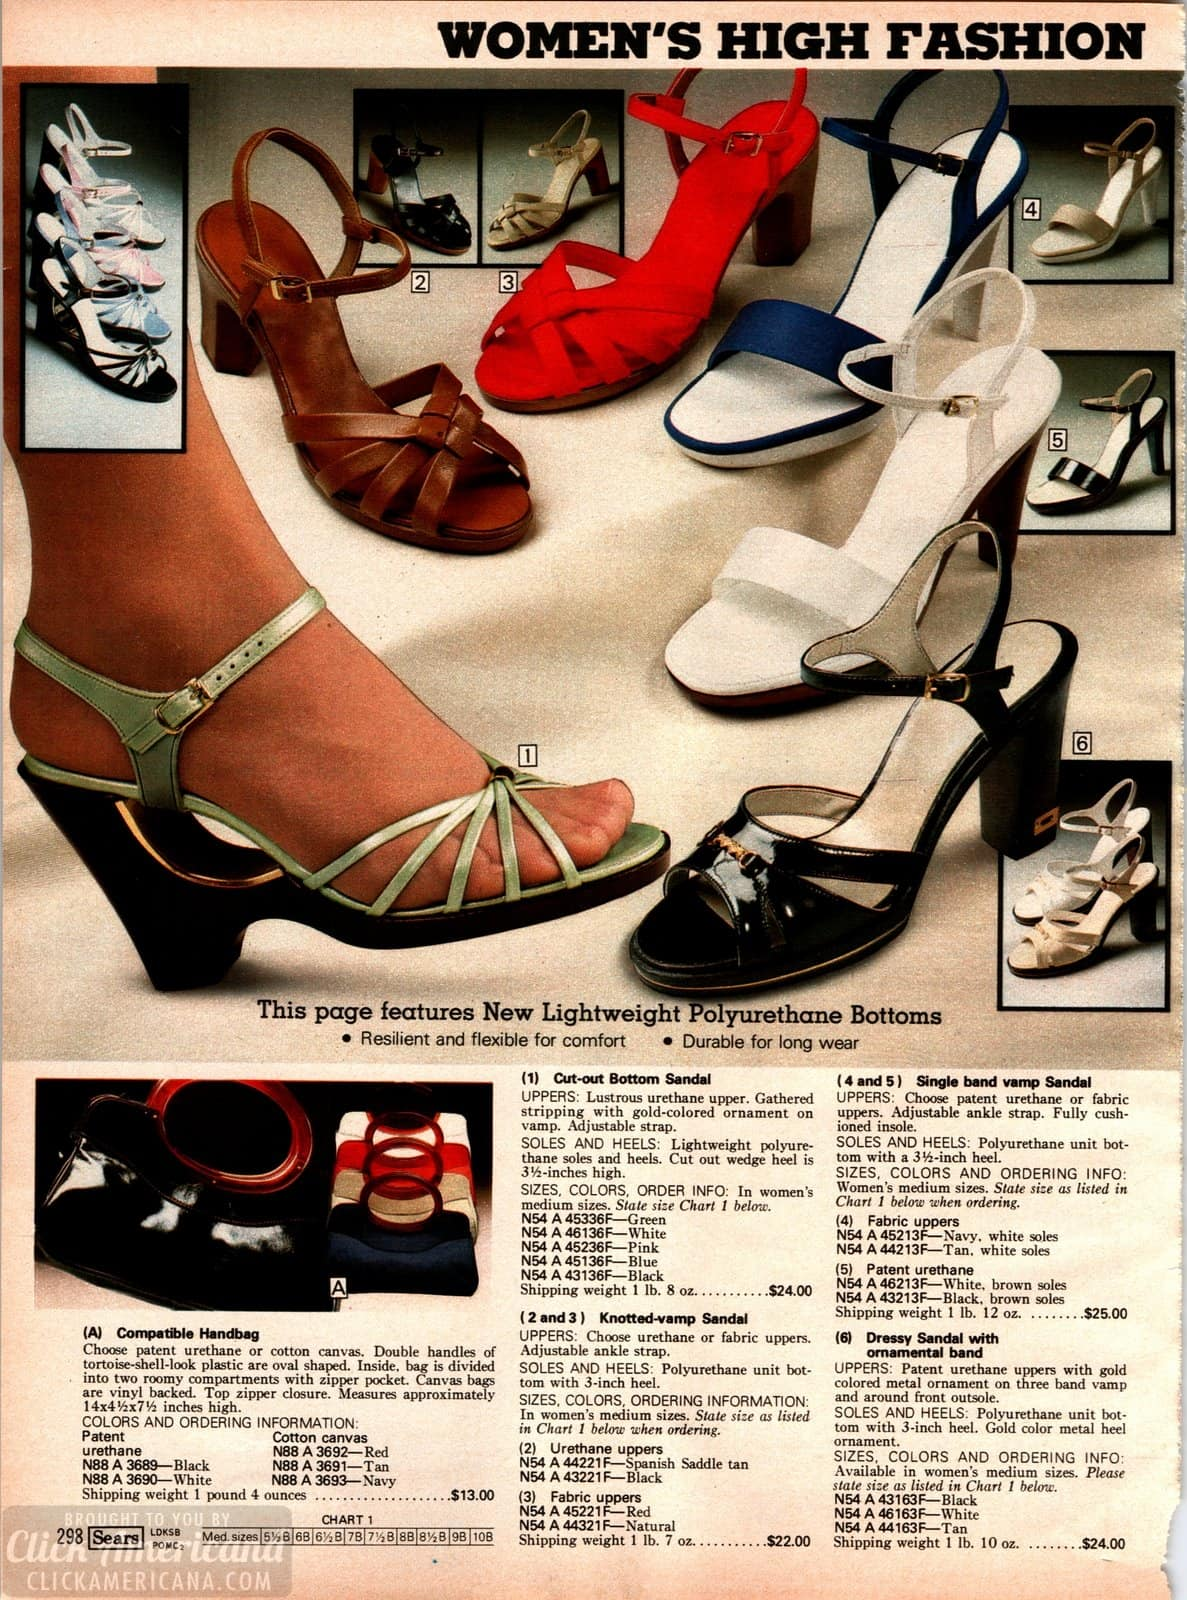 Retro shoe fashions with strappy heels and sandals plus patent and canvas handbags to match